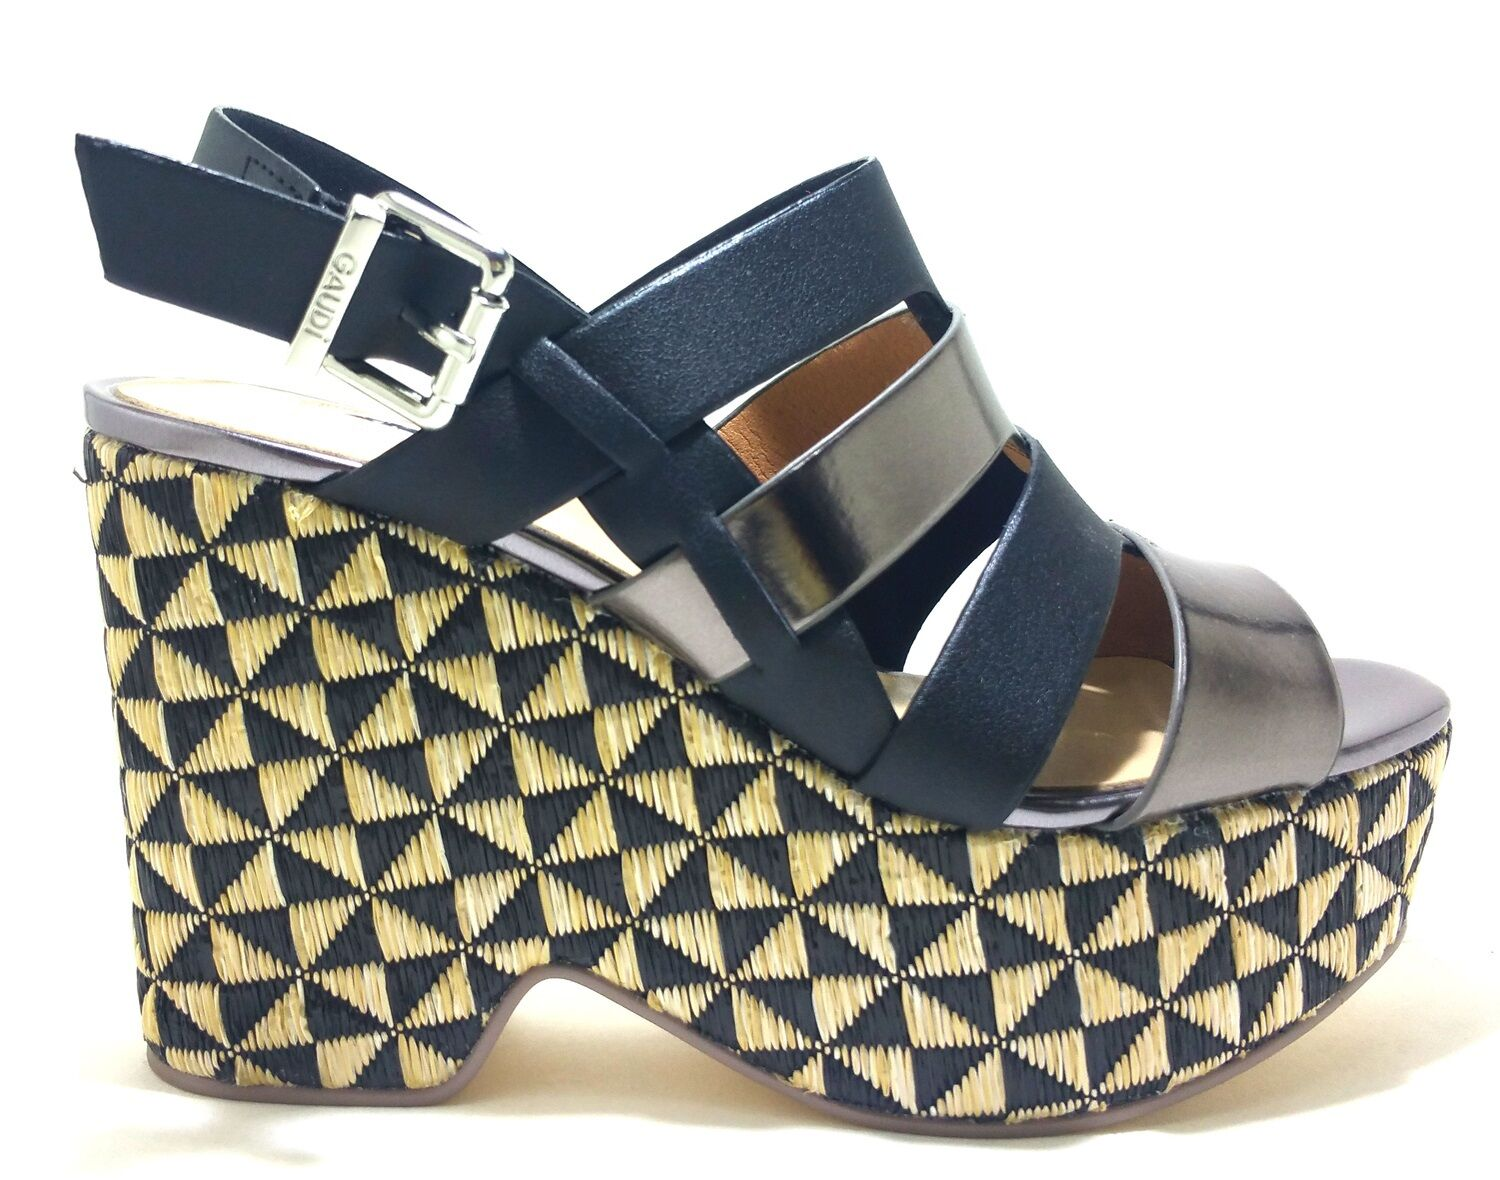 Gaudi Melly v73 65372 shoes High Wedge Sandals Womens Casual Leather Fabric Heel